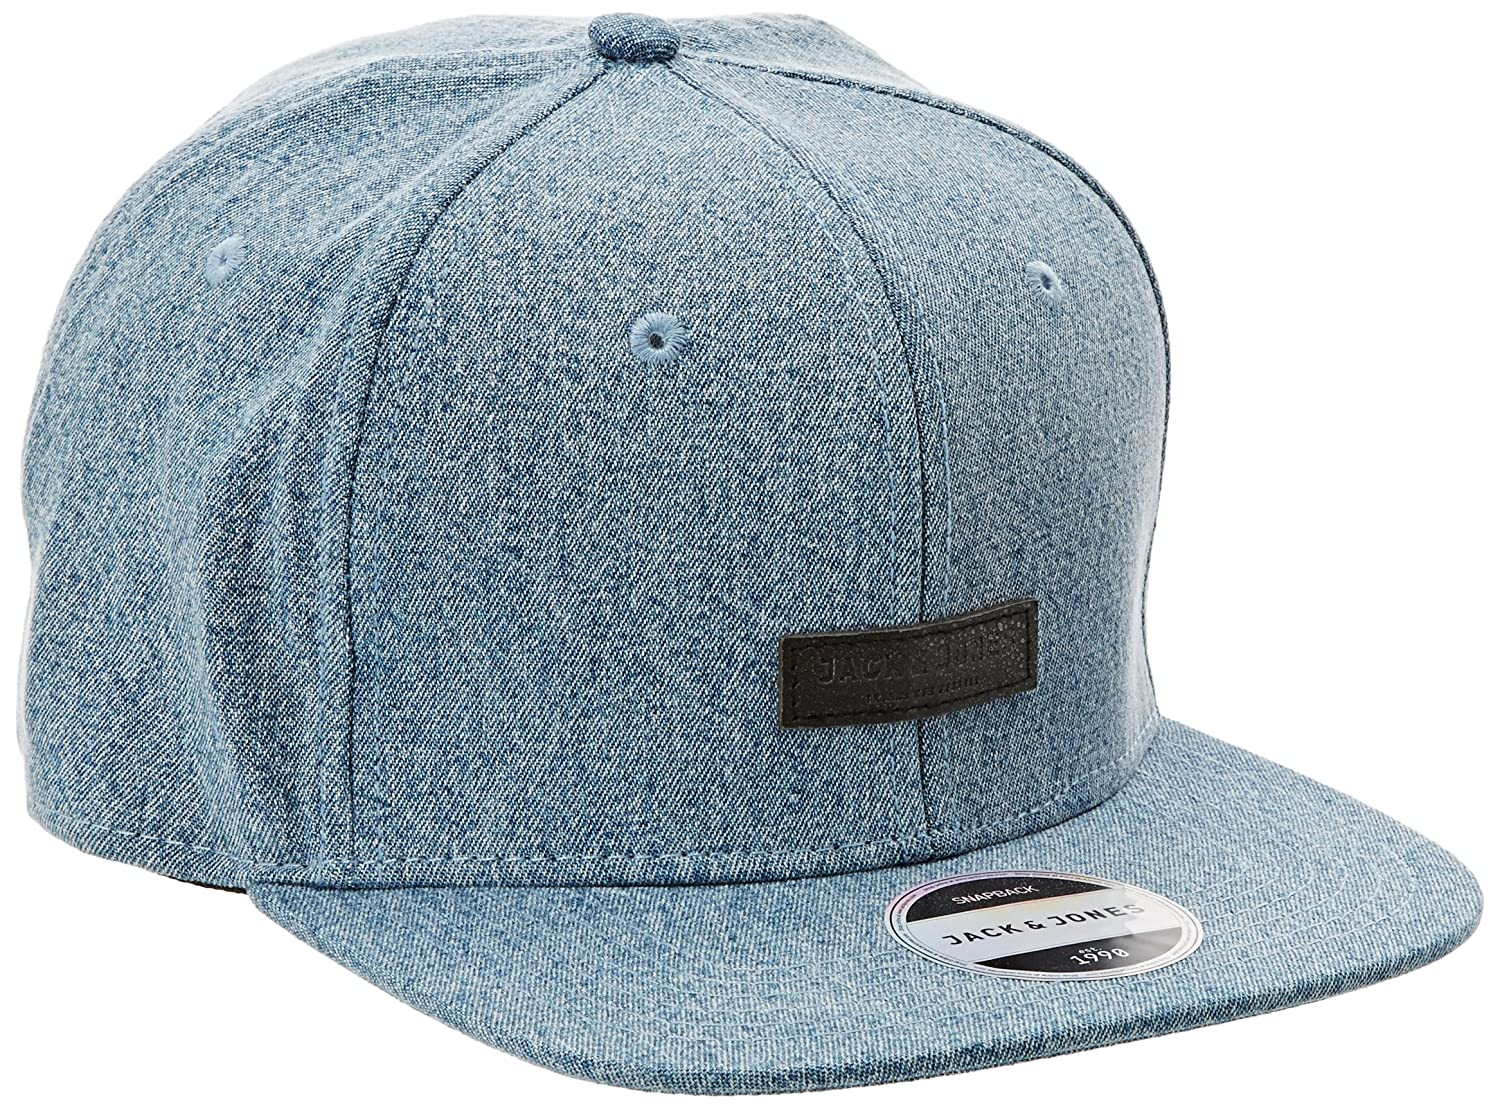 JACK & JONES Acdenim Gorra, Azul (Light Blue Denim), Talla única ...